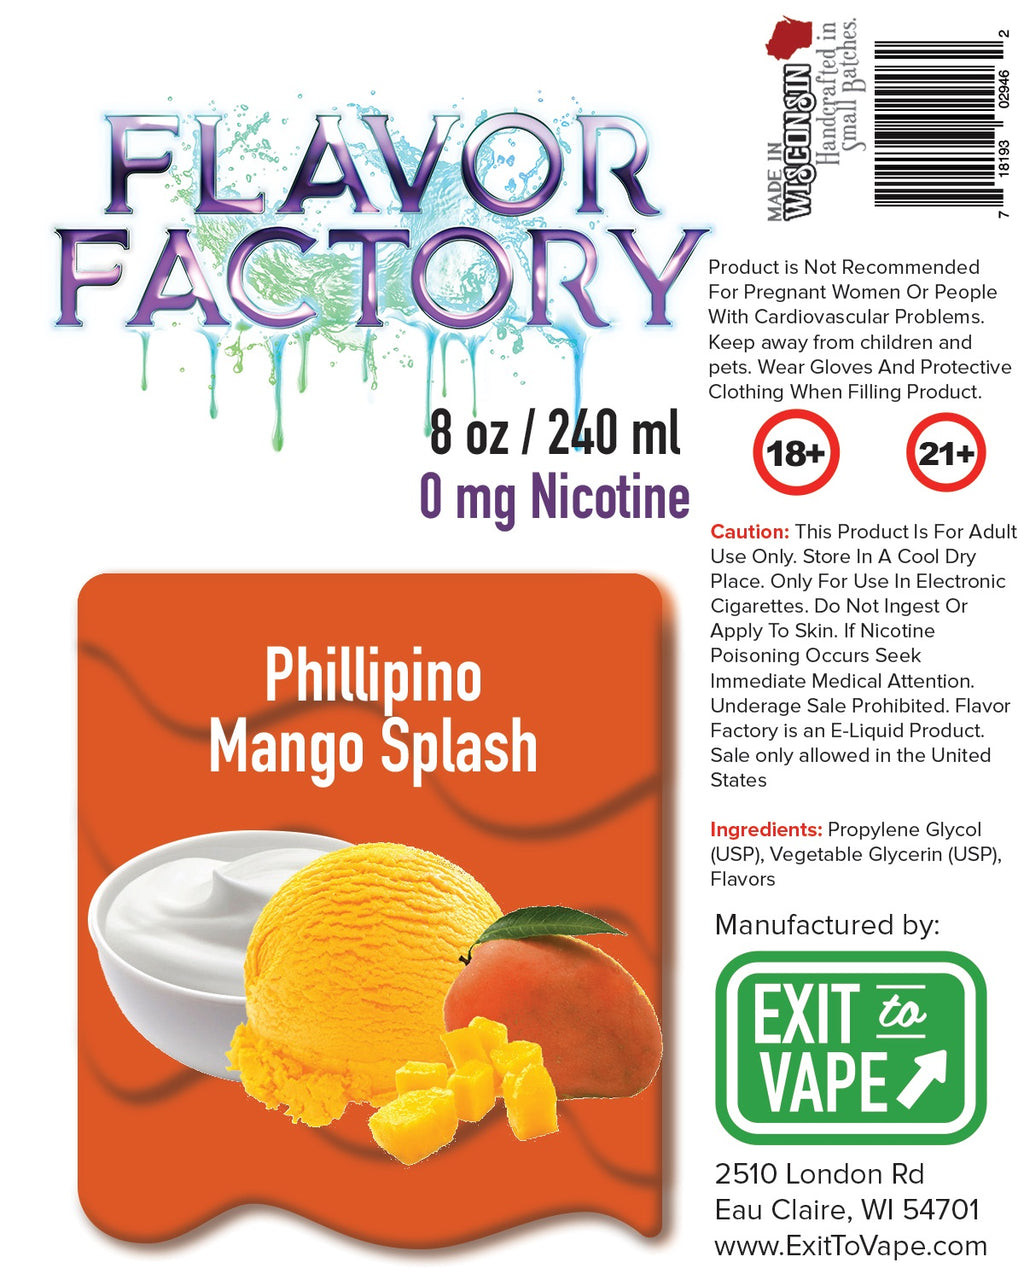 Flavor Factory E-Juice - Phillipino Mango Splash - AZARA VAPE